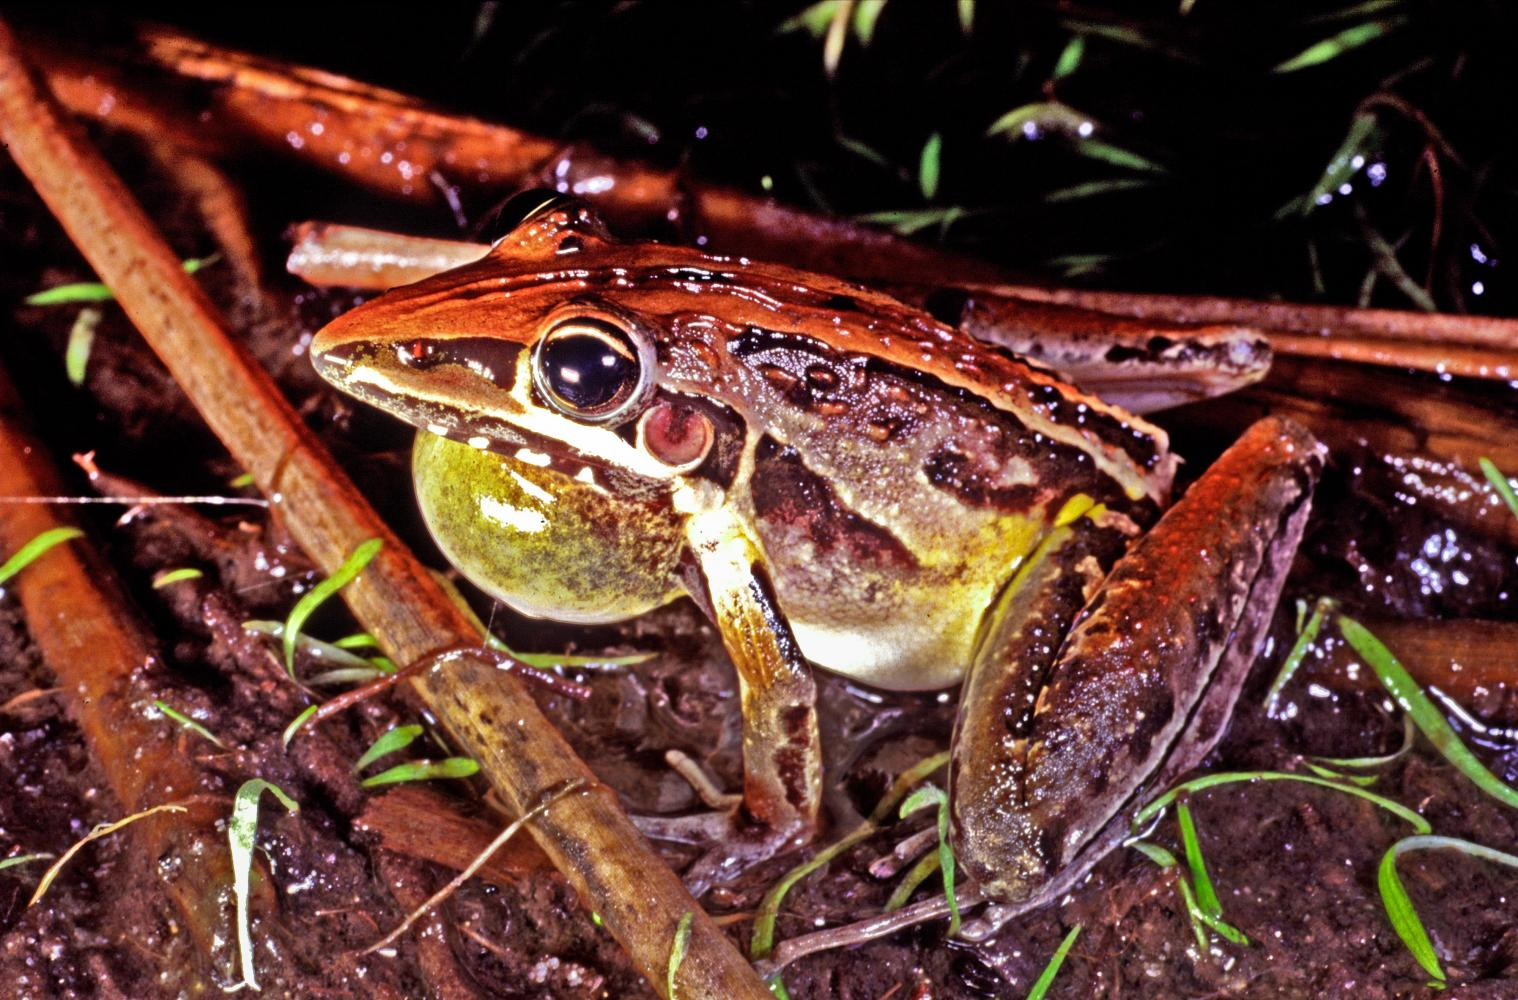 Wallum Rocketfrog (<i>Litoria freycineti</i>). Moreton Island. One of the species of frogs adapted to life in acidic waters.